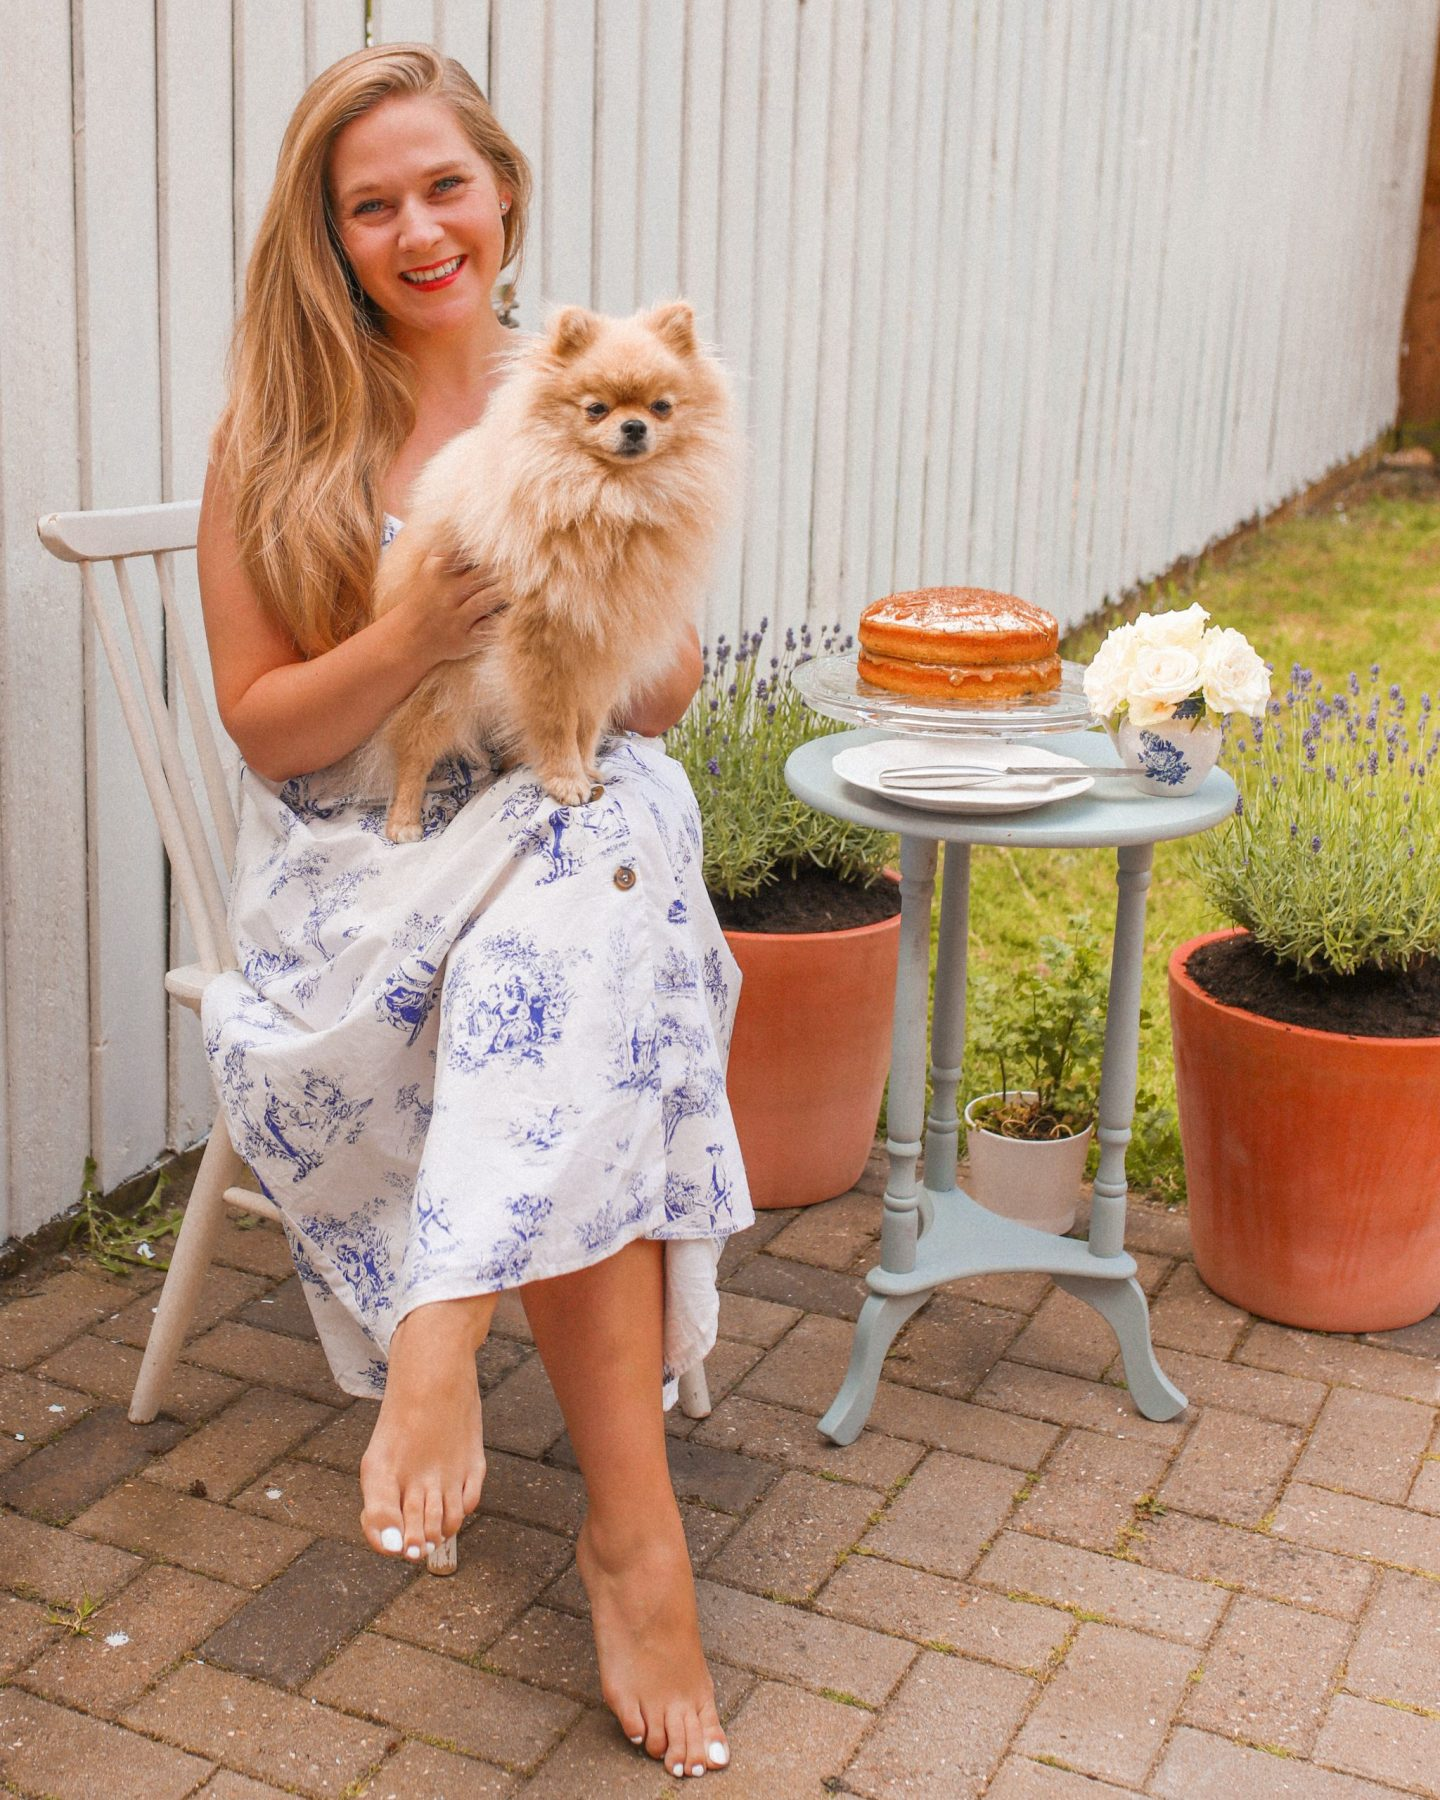 Banana cake, Pepi The Pom and Katie KALANCHOE